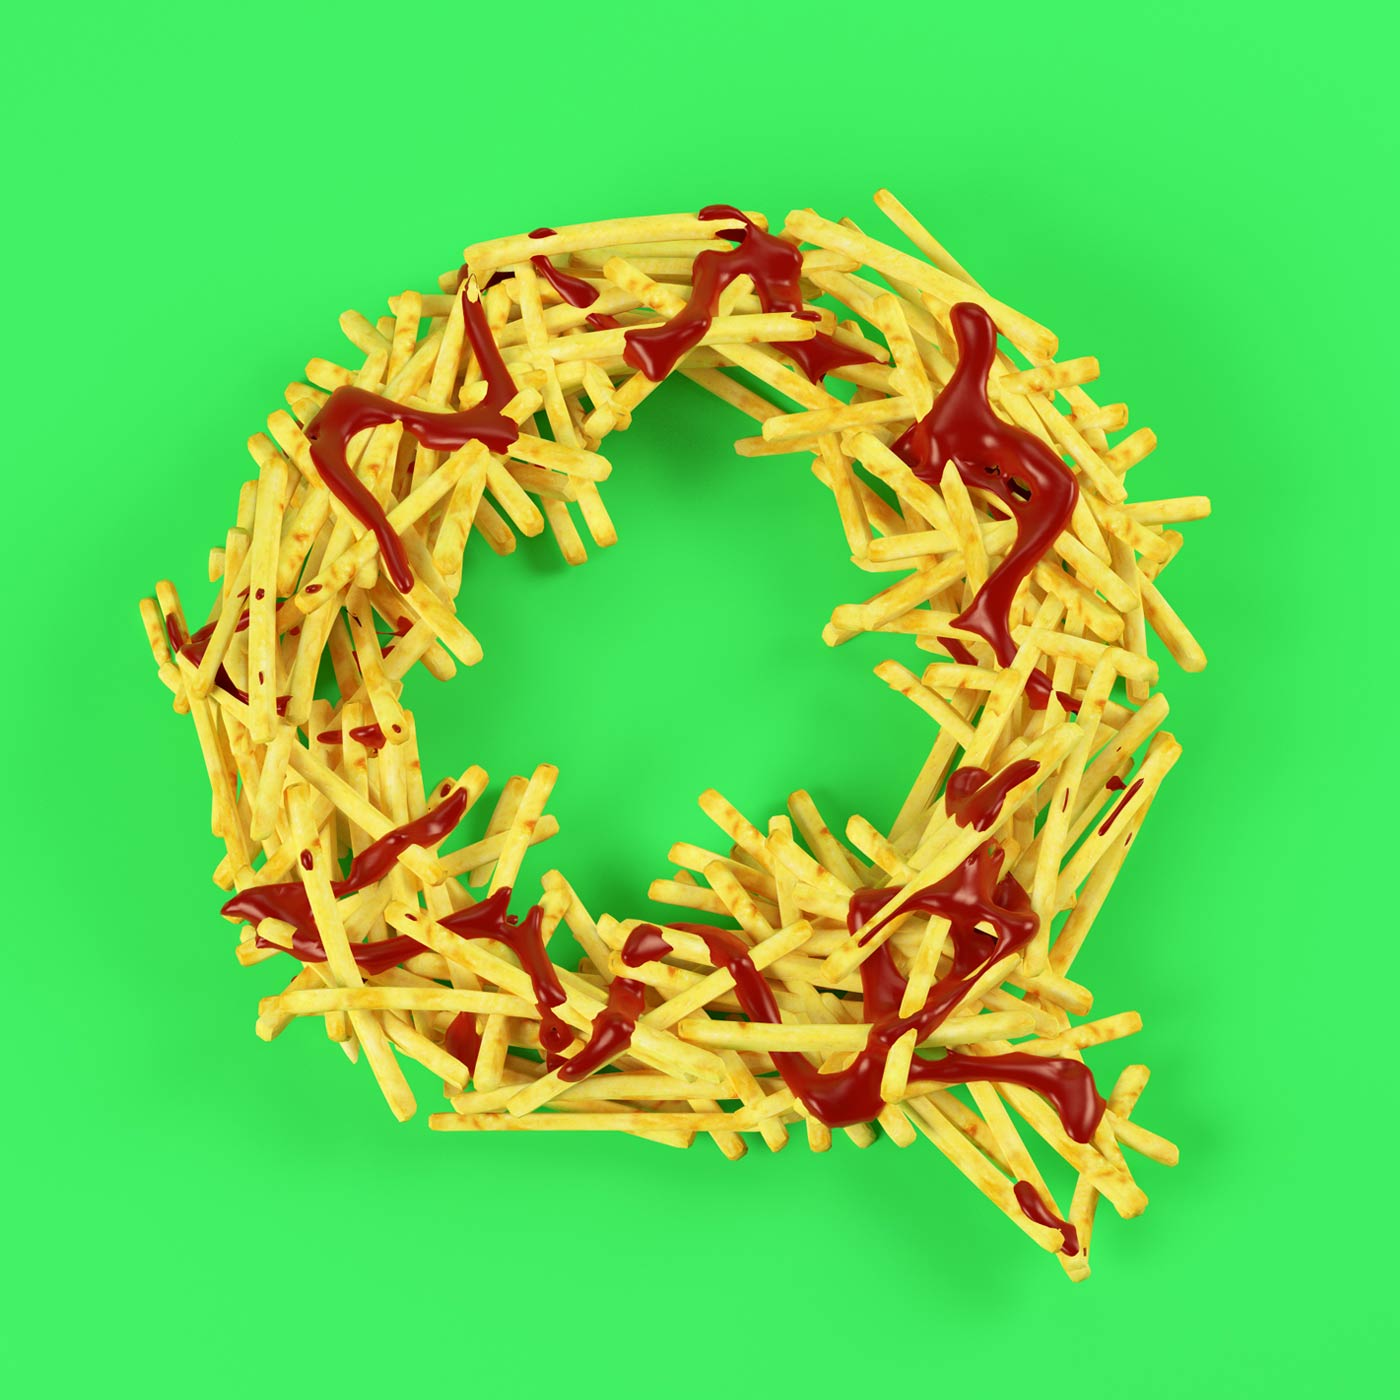 FOOD 3DFOOD FOODALPHABET CESS 3D 3DTYPE LETTERING CGI 3DARTIST FRIES